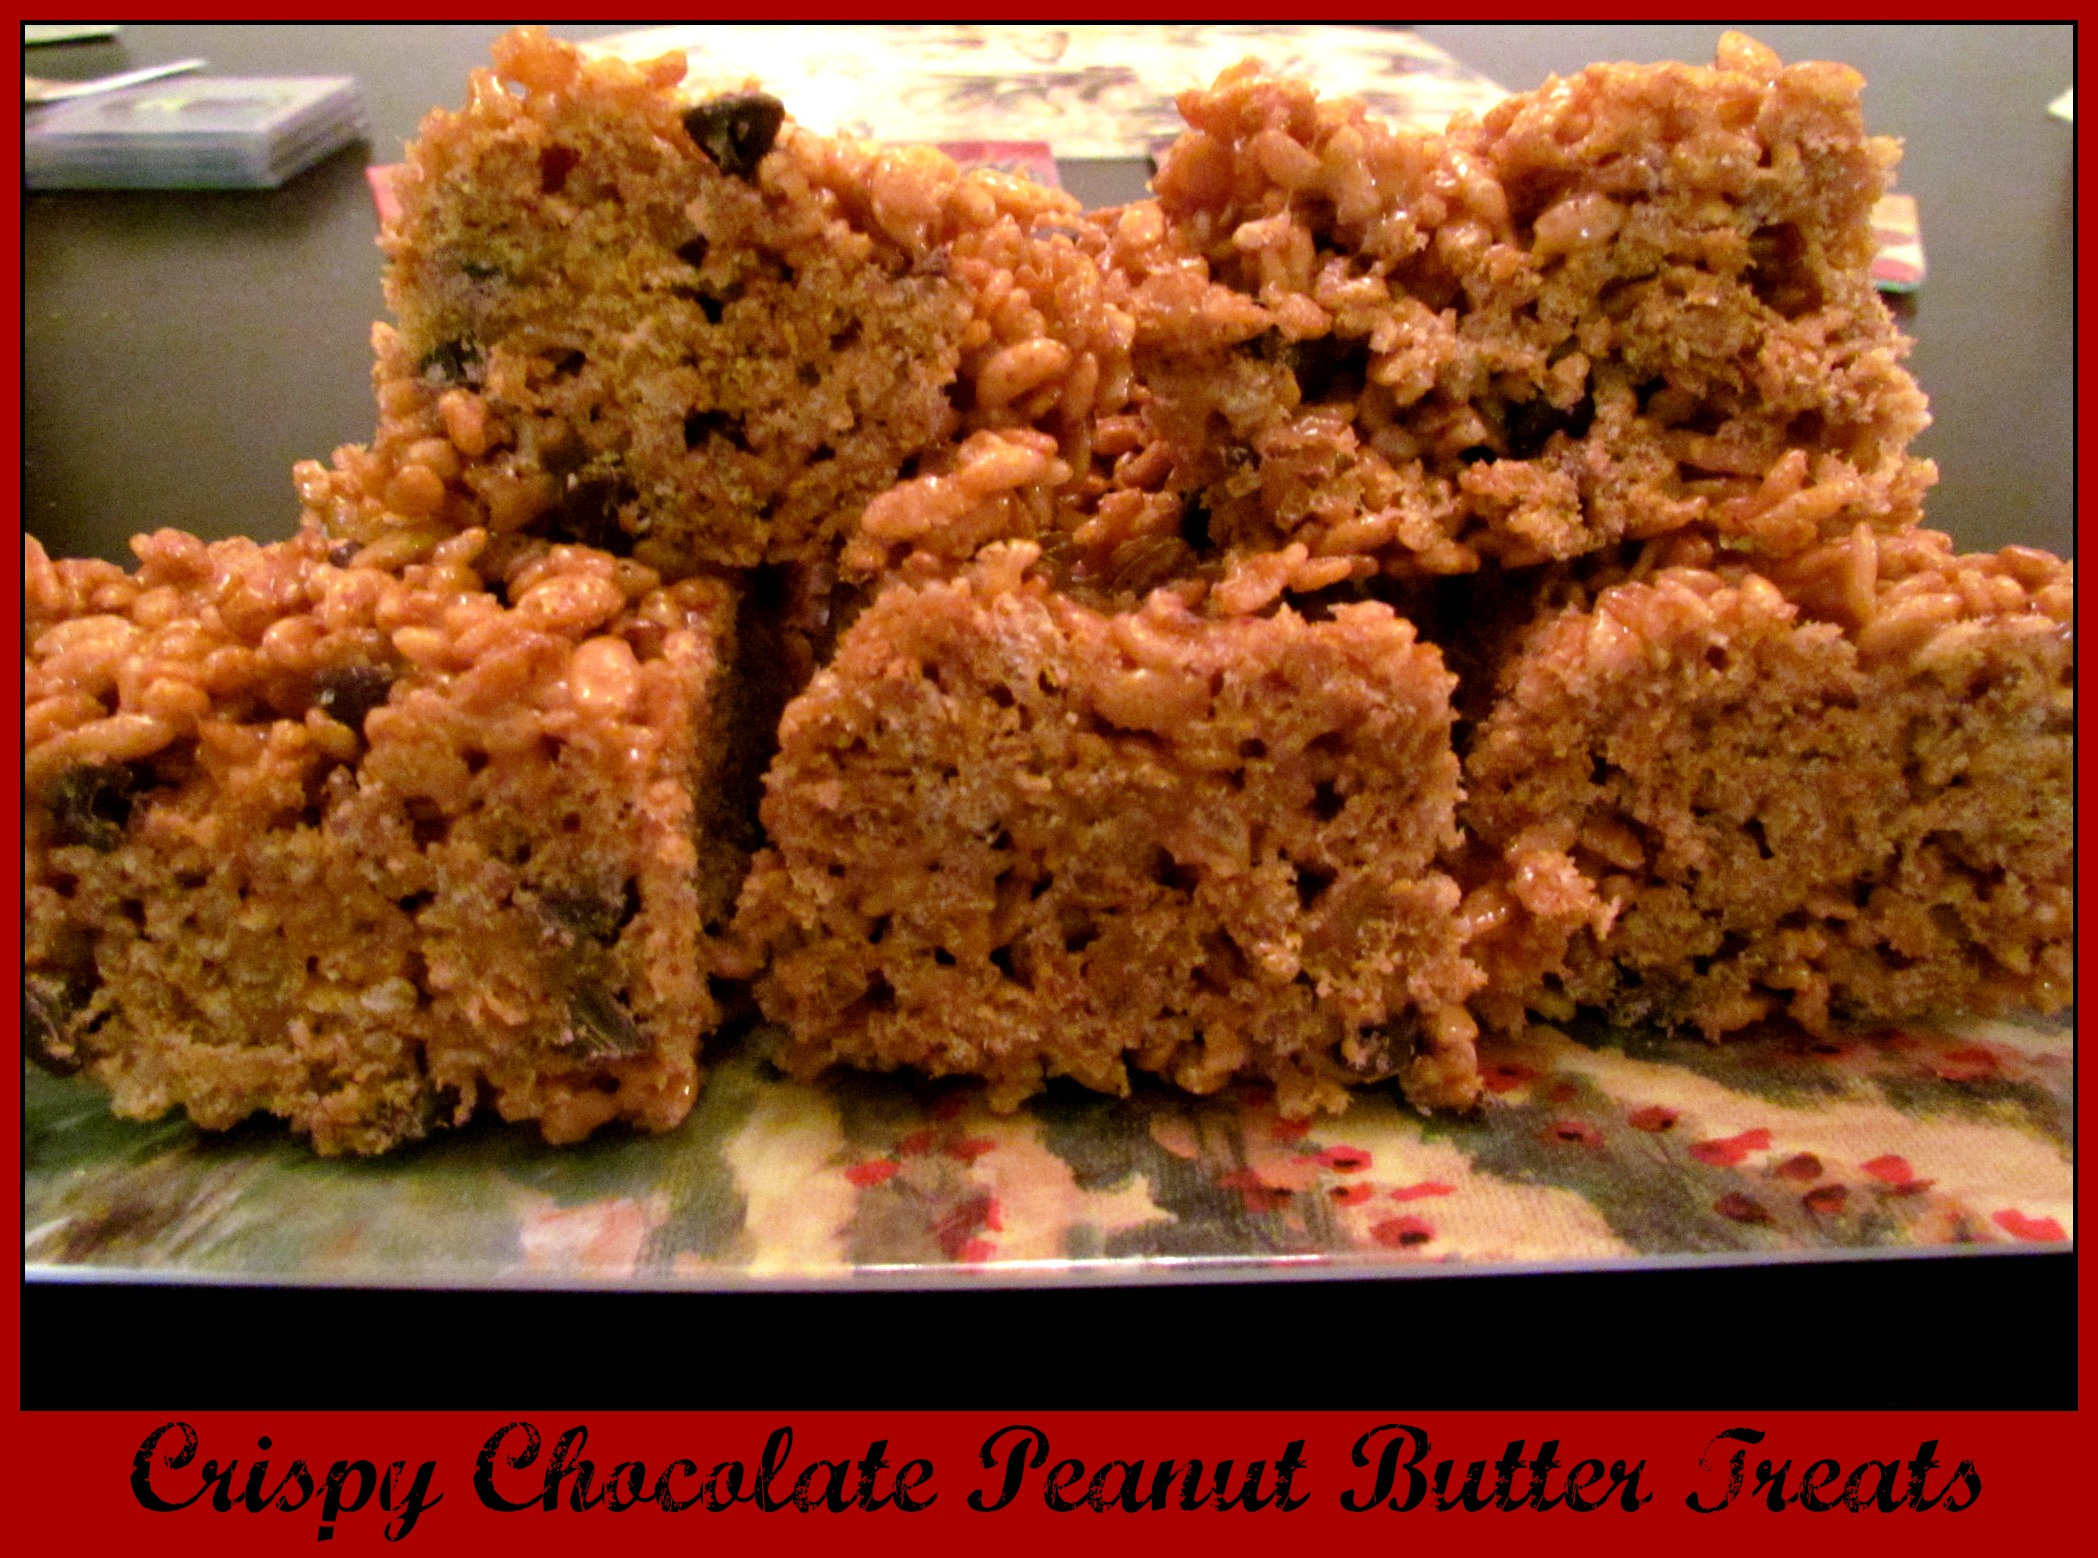 Crispy Chocolate Chip Peanut Butter Treats